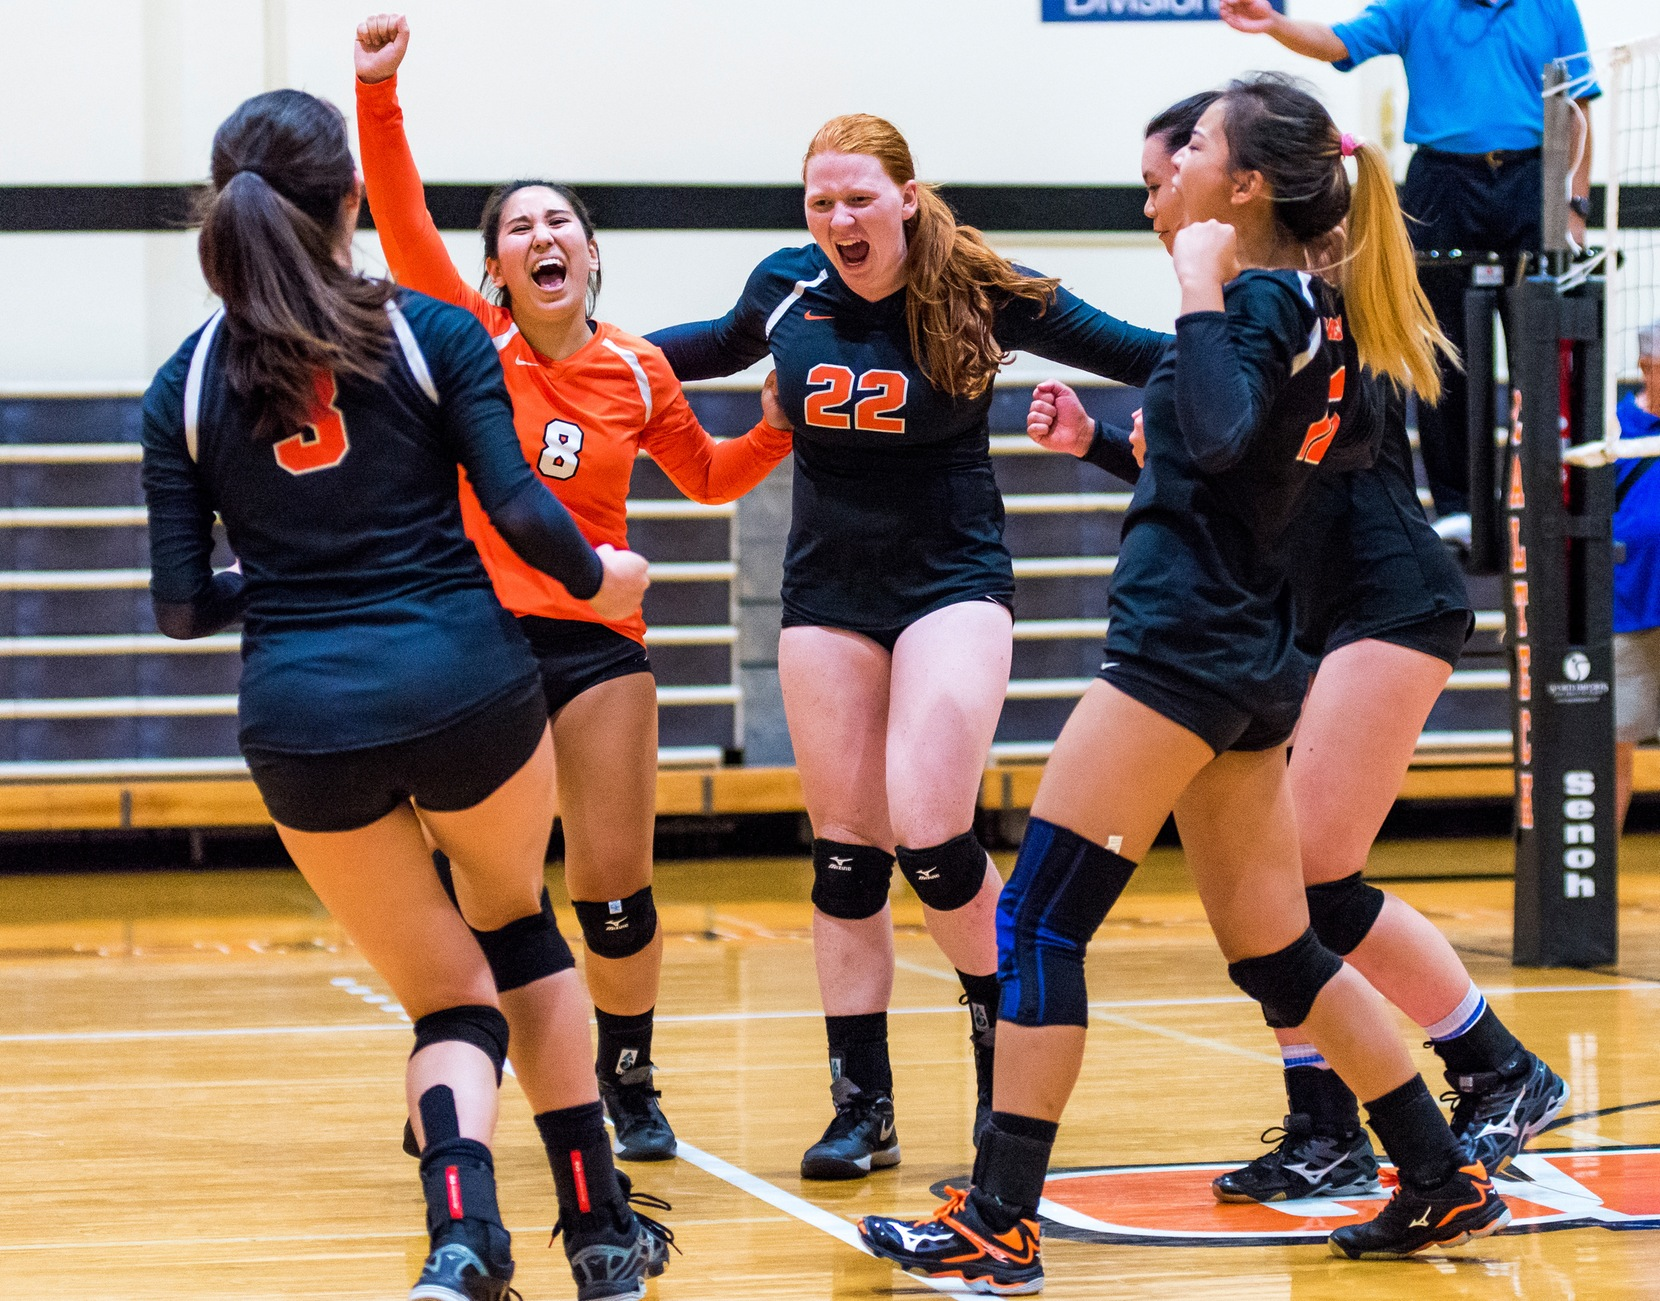 VOLLEYBALL VICTORIOUS IN SCIAC AT LAST!